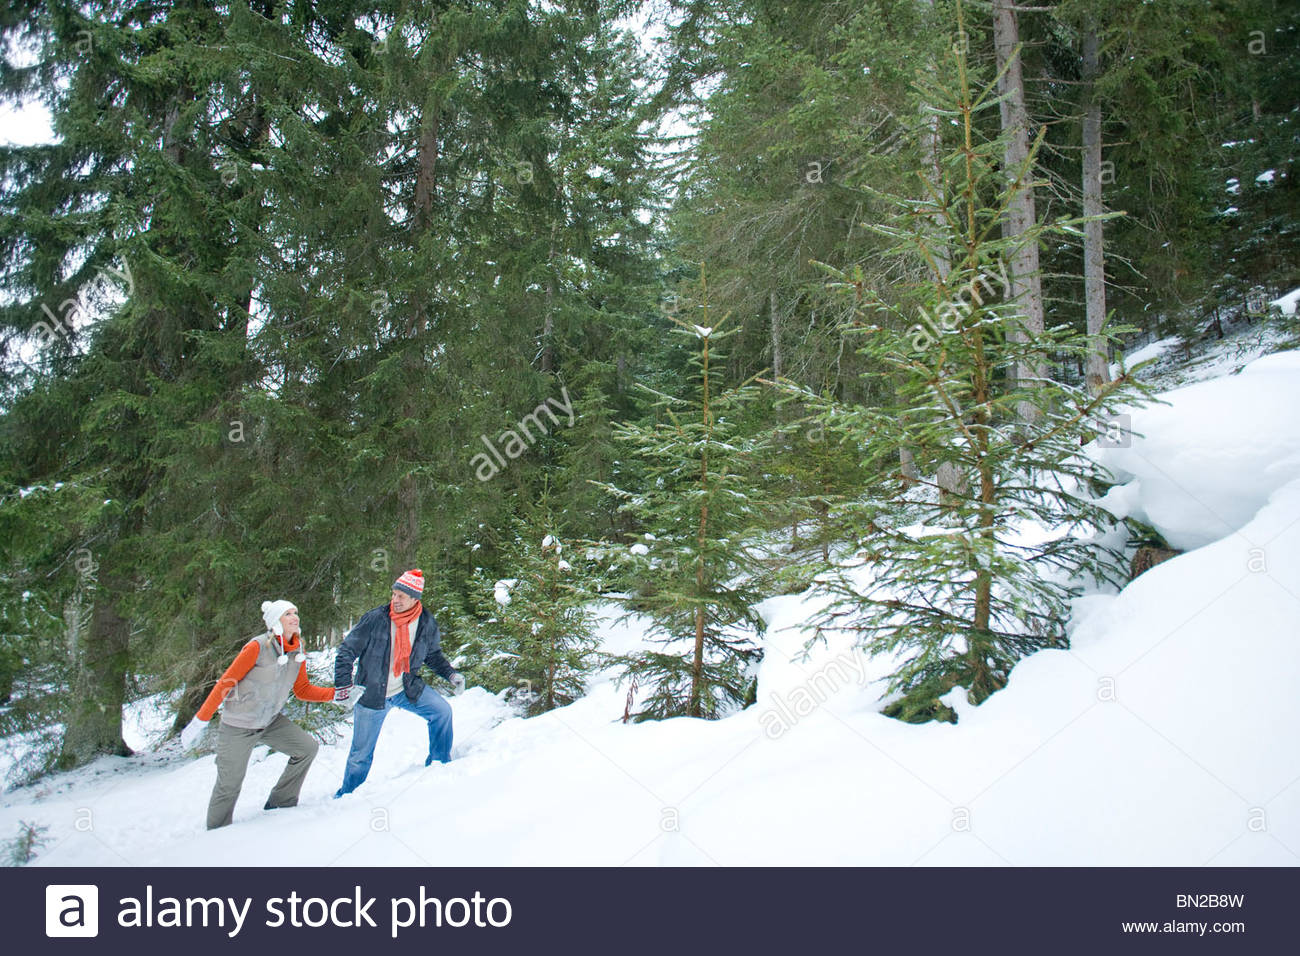 Couple holding hands and climbing slope in snowy woods - Stock Image